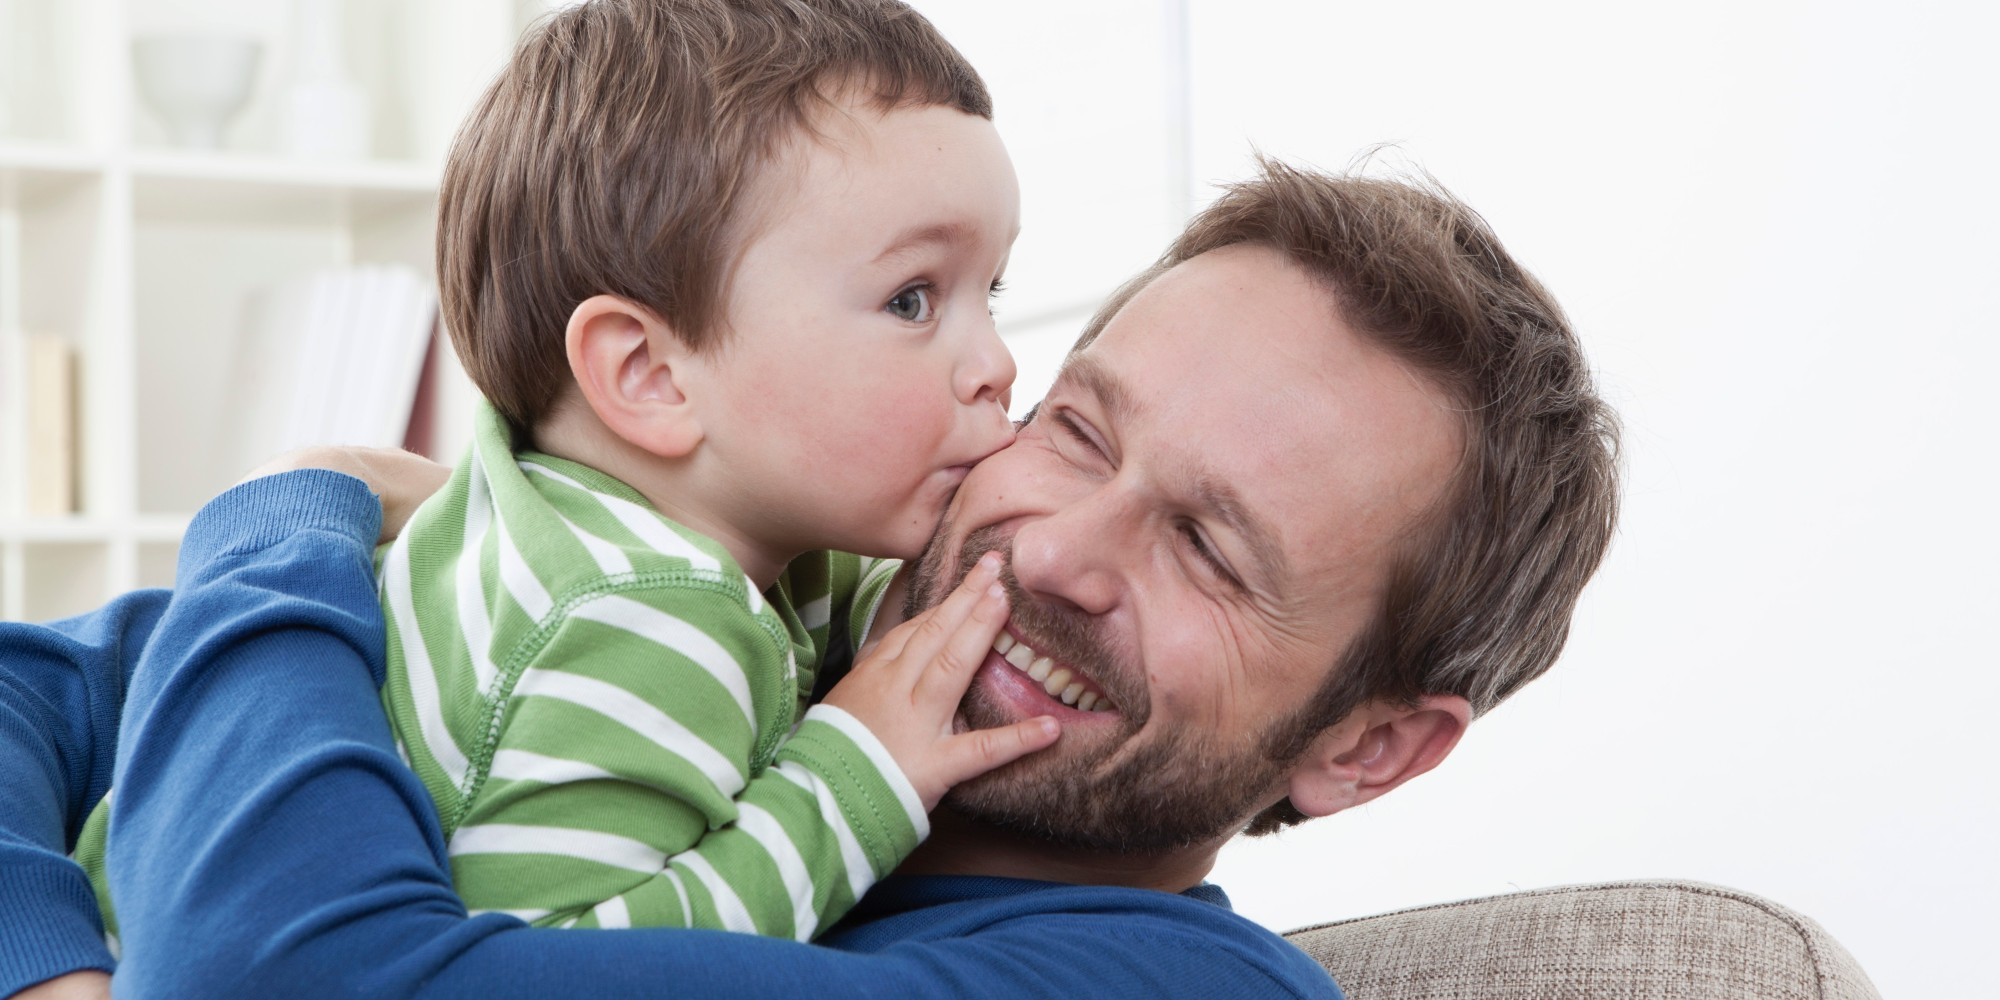 A Son Kisses a Father 448.62 Kb